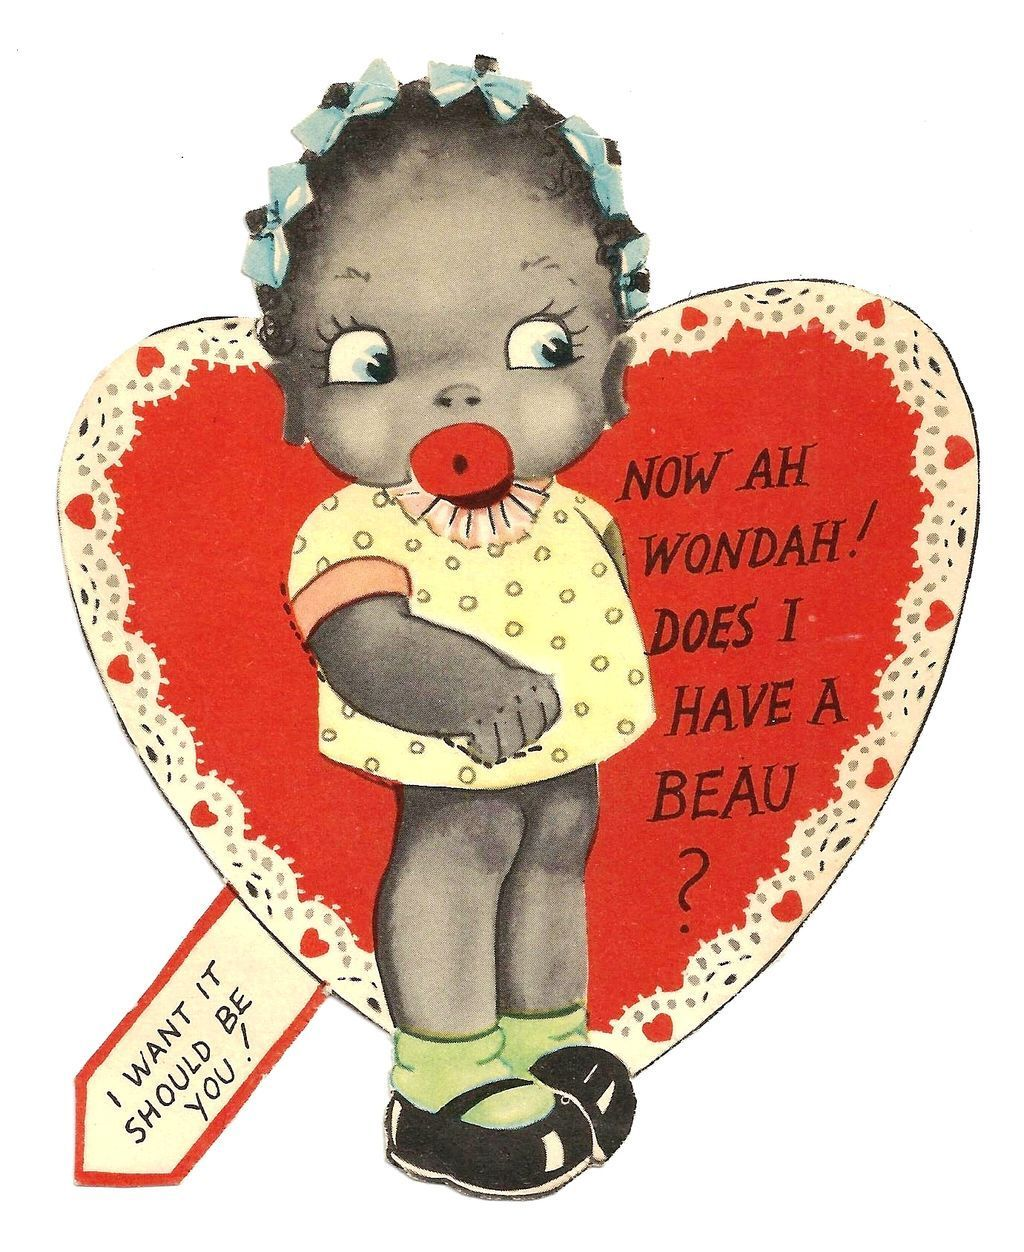 1920s African American Childrenu0027s Vintage Valentine   Black Americana  Little Girl Caricature  Vivid Color Lithography   Cut Out Flat Card